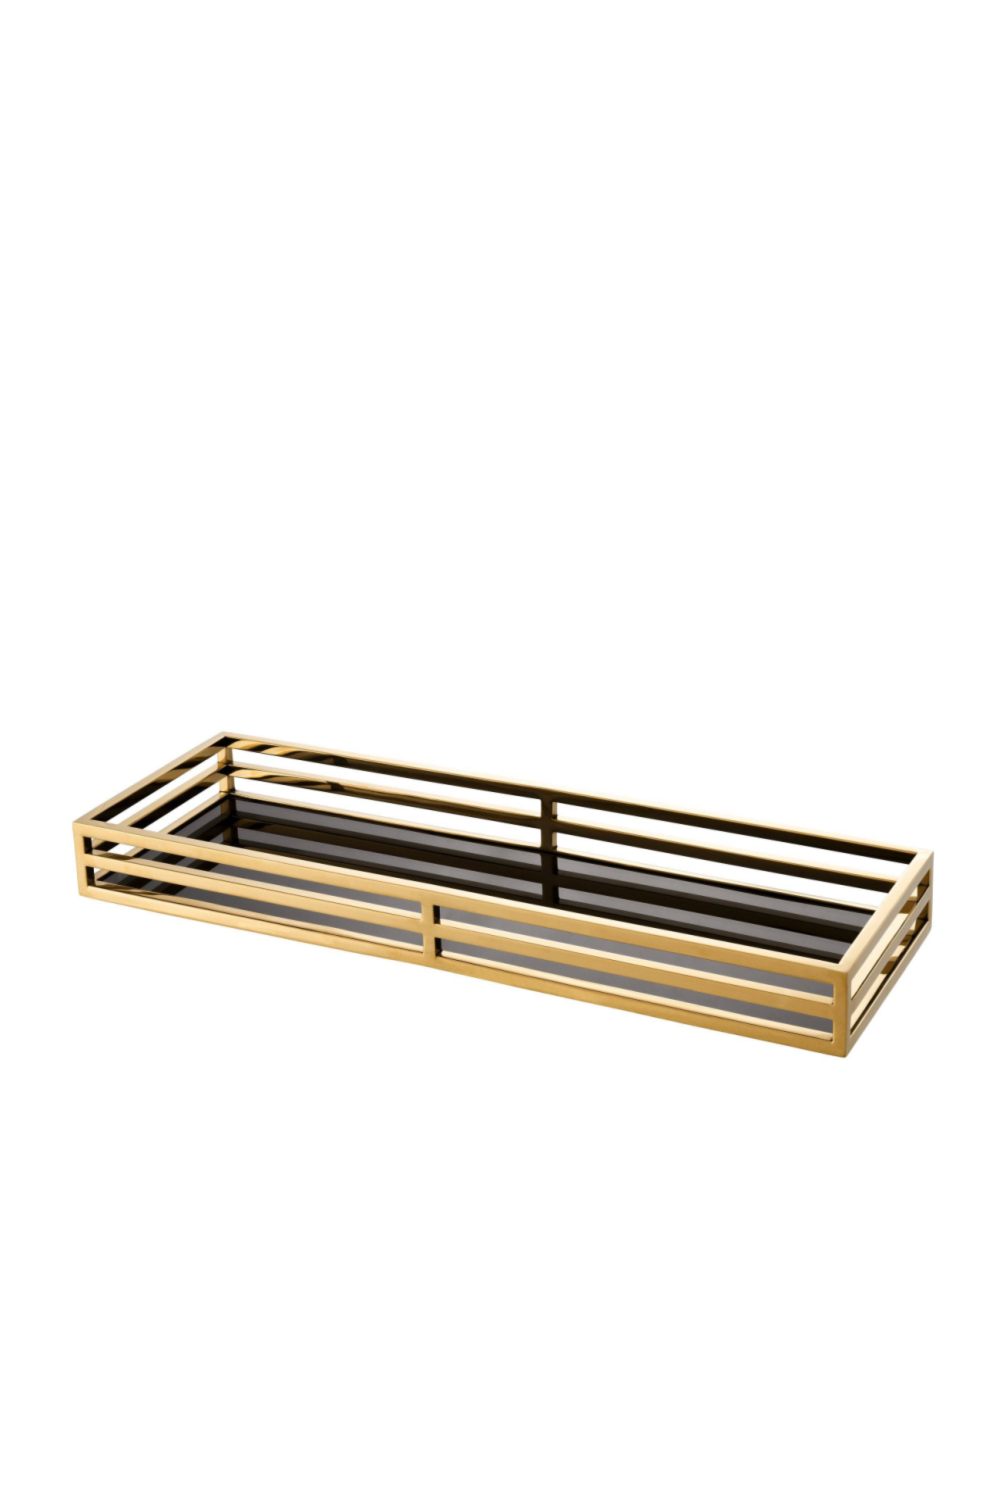 Black and Gold Serving Tray | Eichholtz Ersa